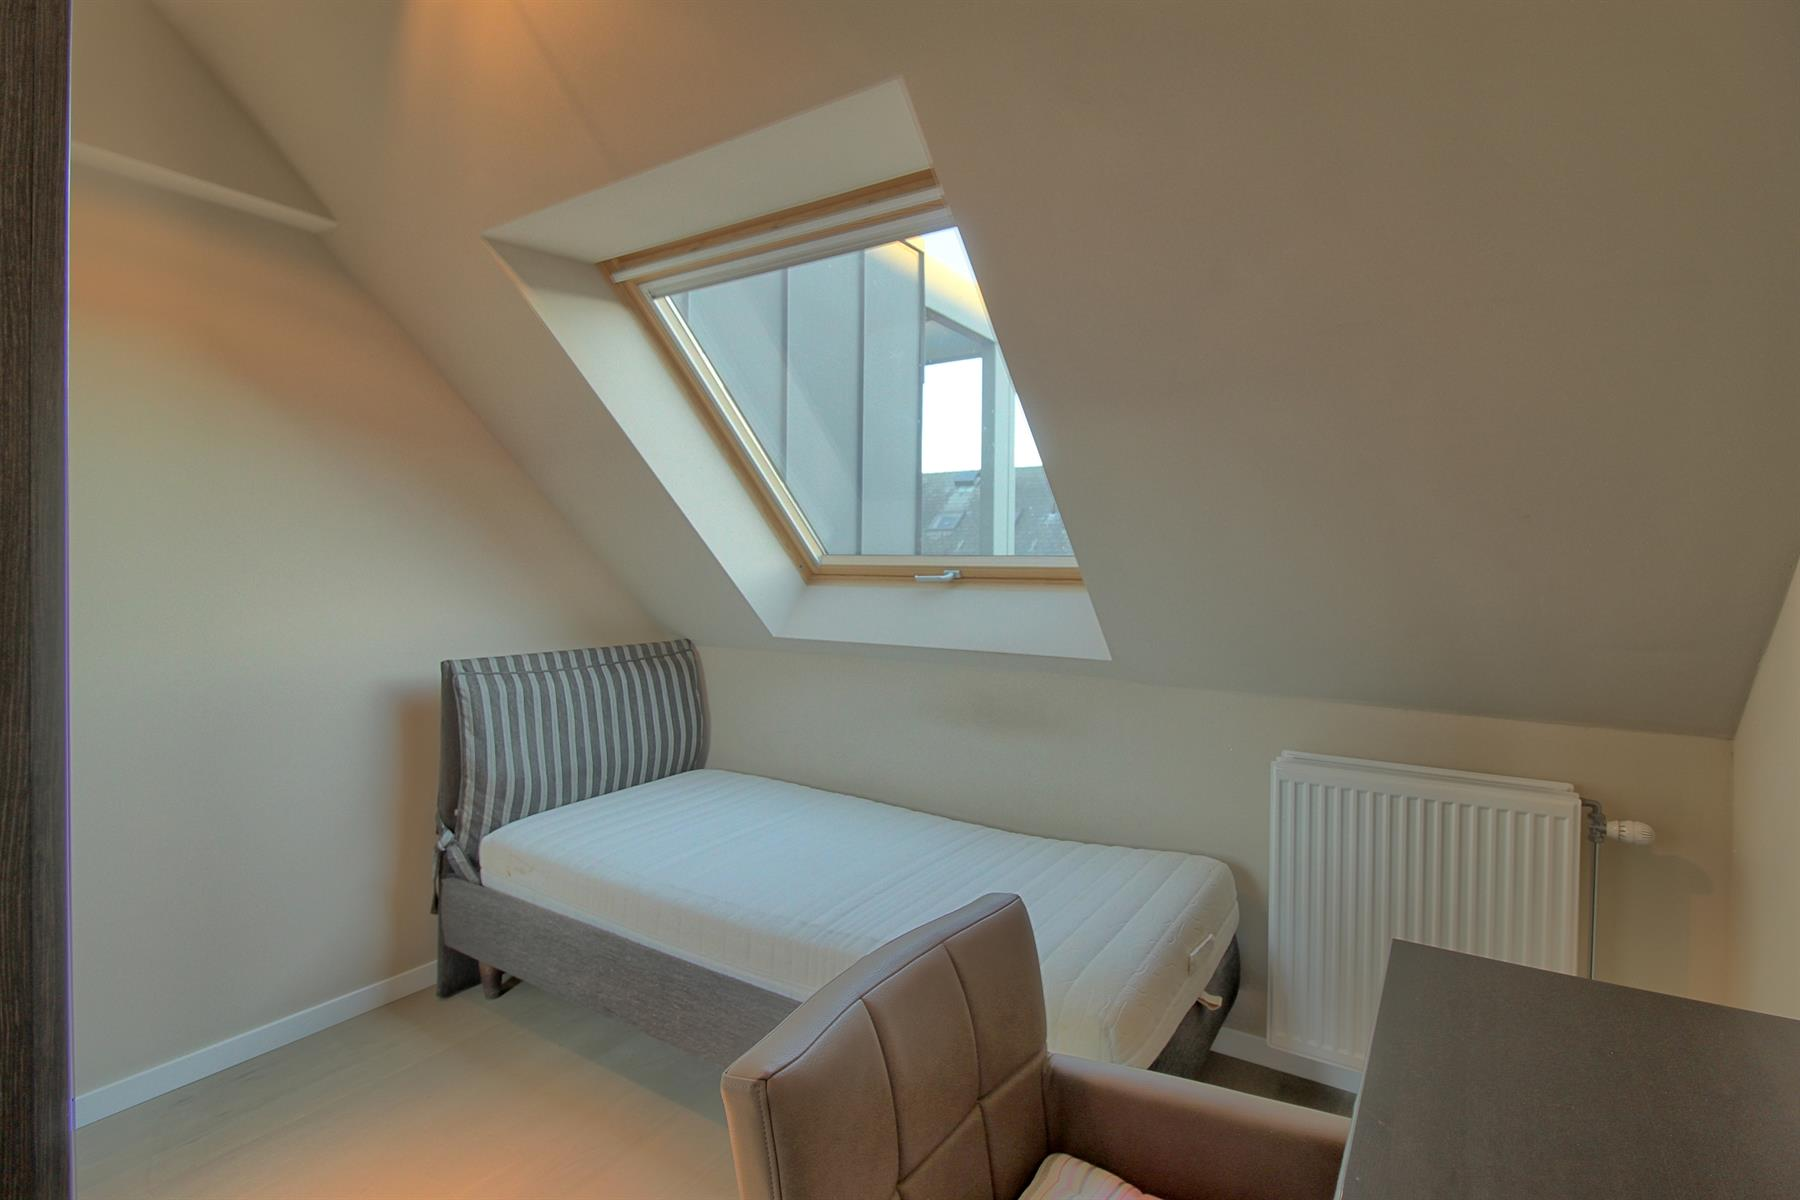 Appartement - Evere - #4210047-5